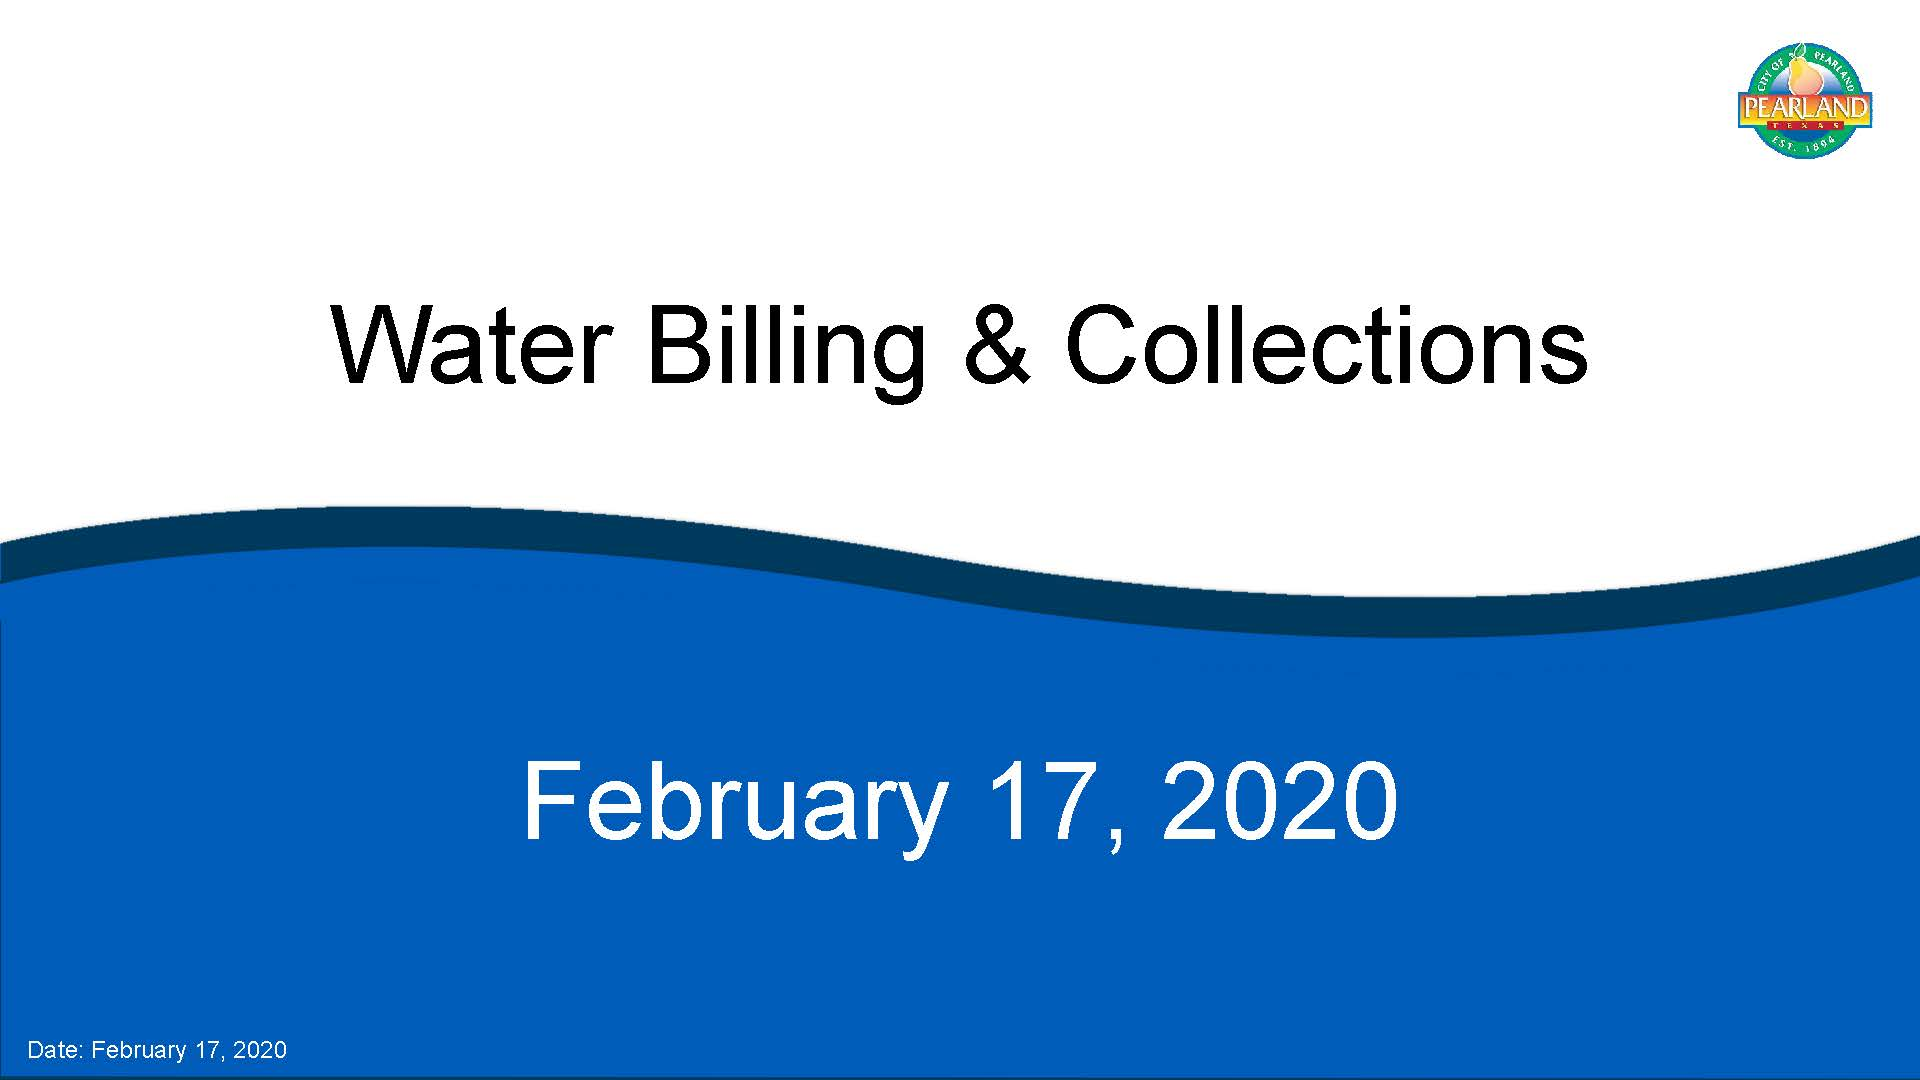 Click Here to Download the Febraury 2020 Water Billing Presentation